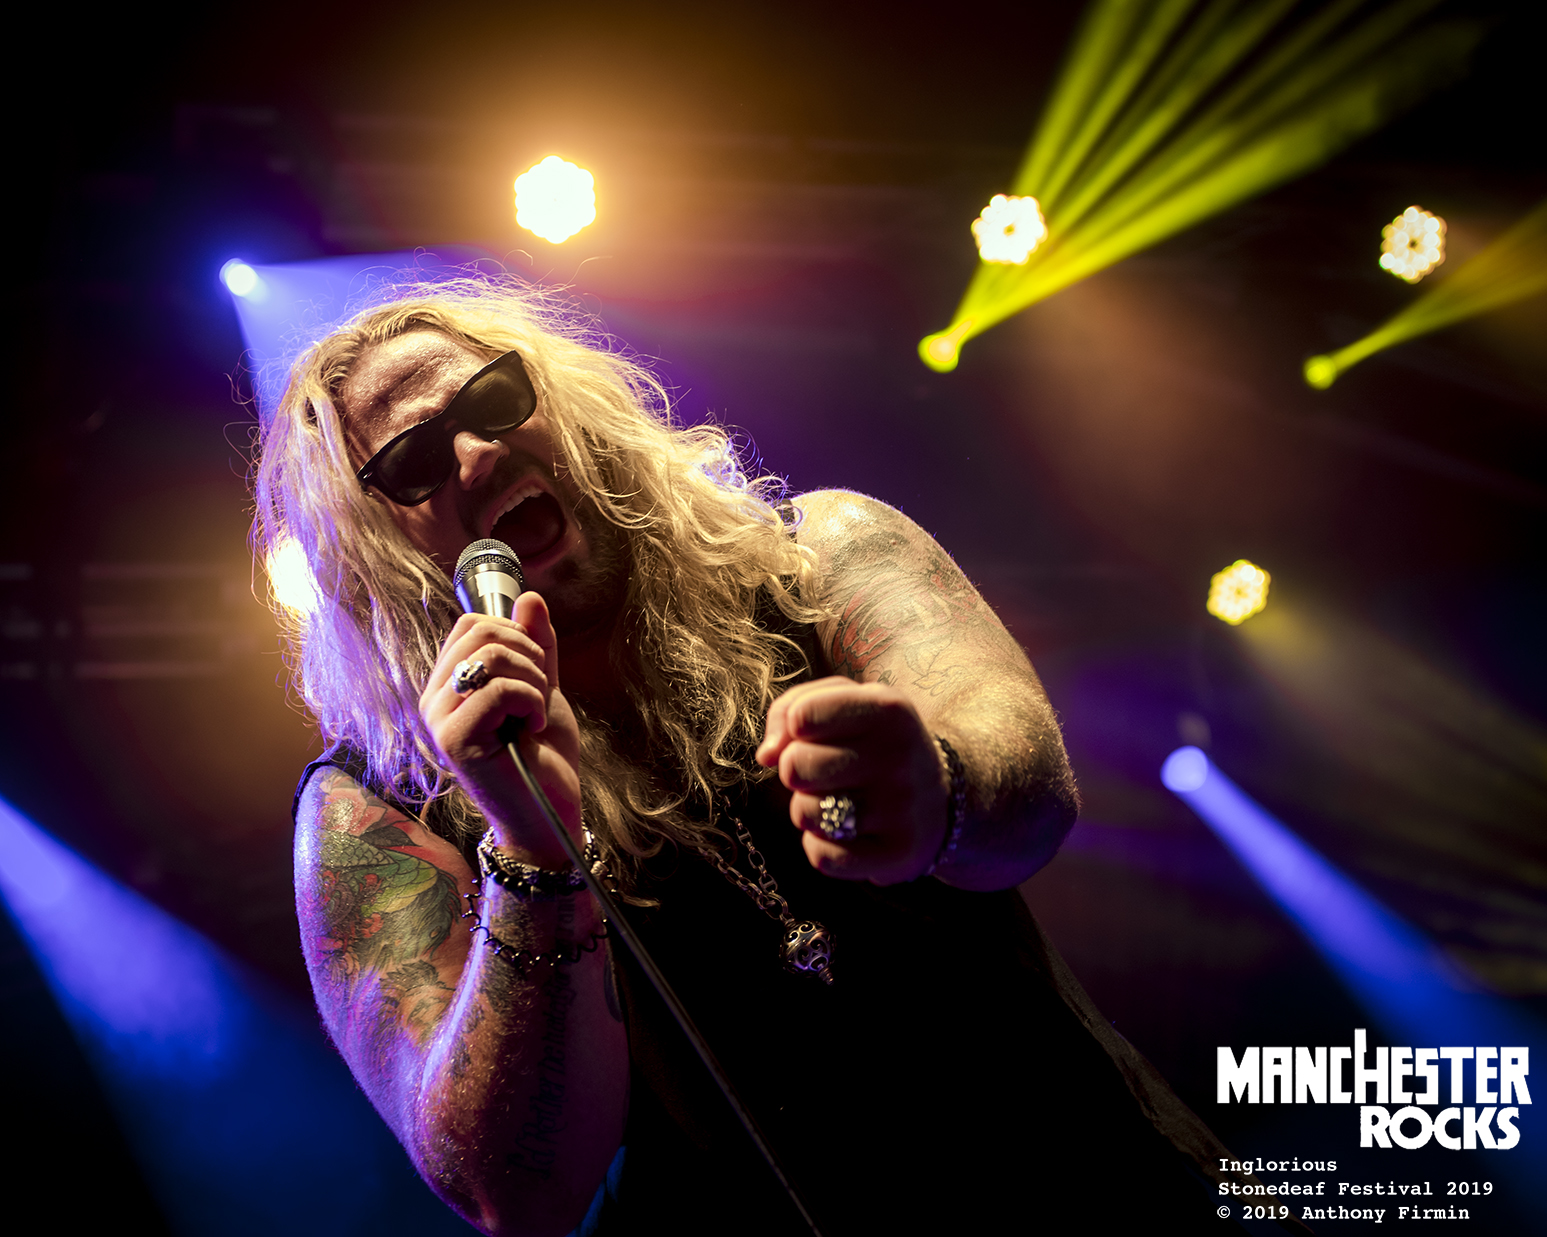 Inglorious-Stonedeaf-1384-small.jpg